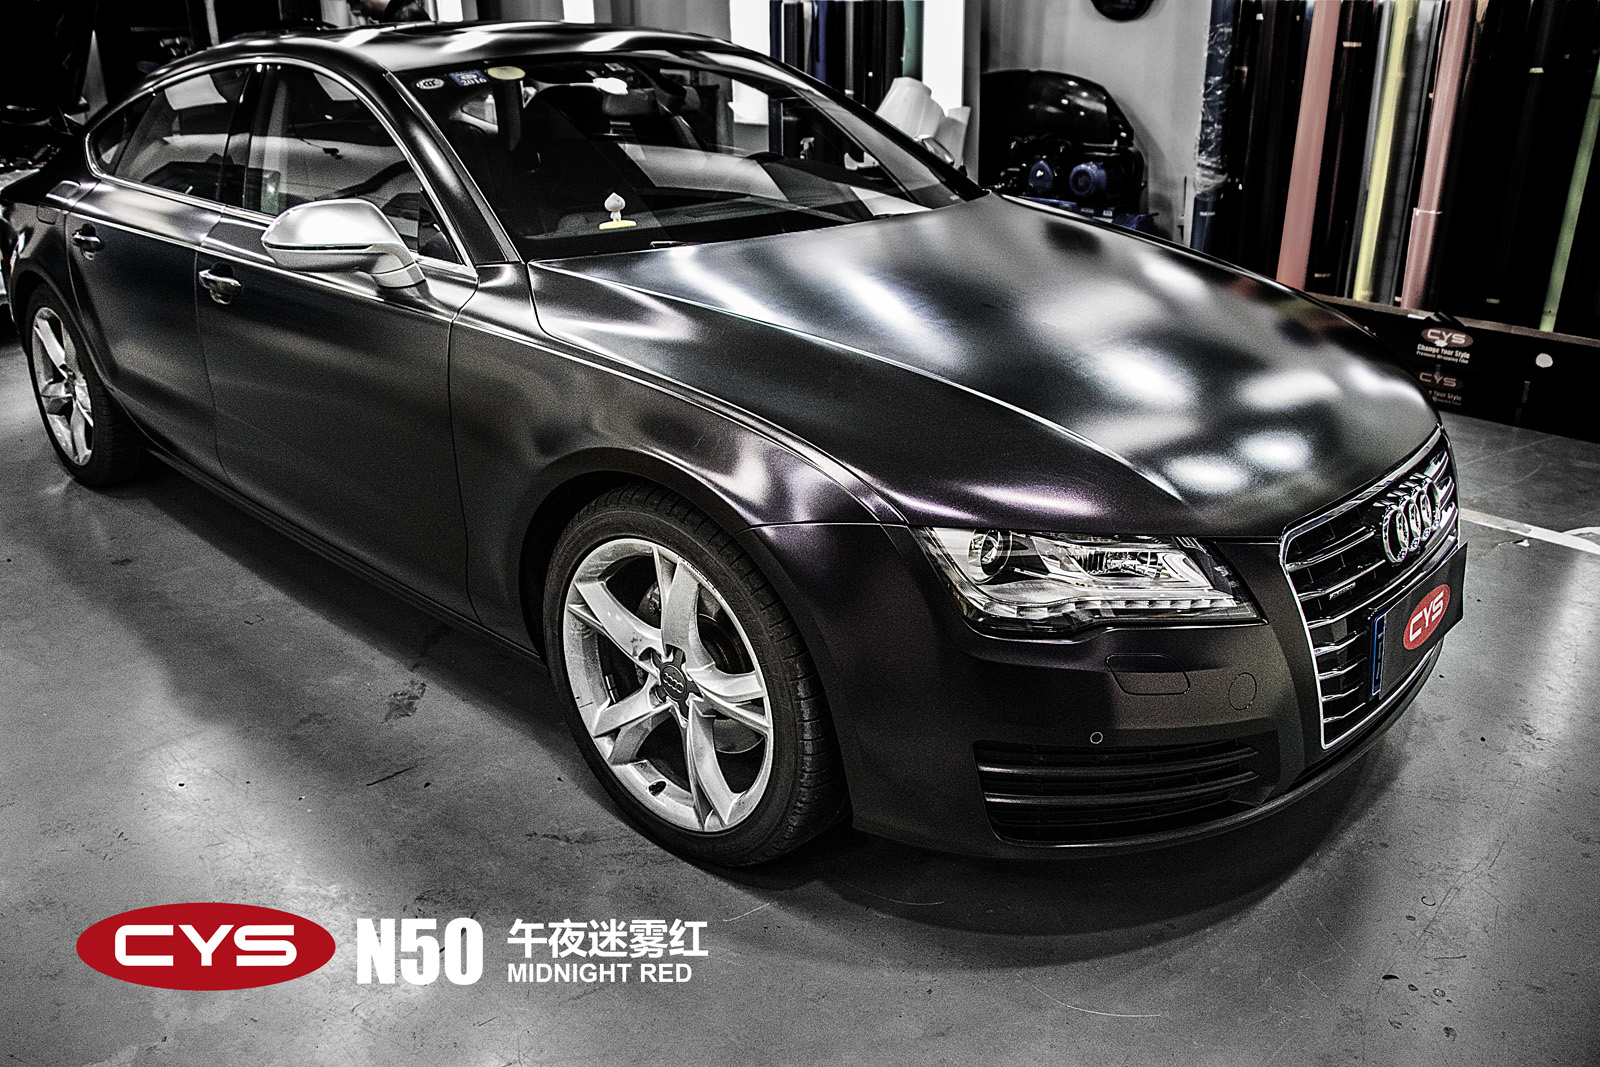 Audi N Midnight RedGalleryCYS Vehicle Film Official Website - Audi official website